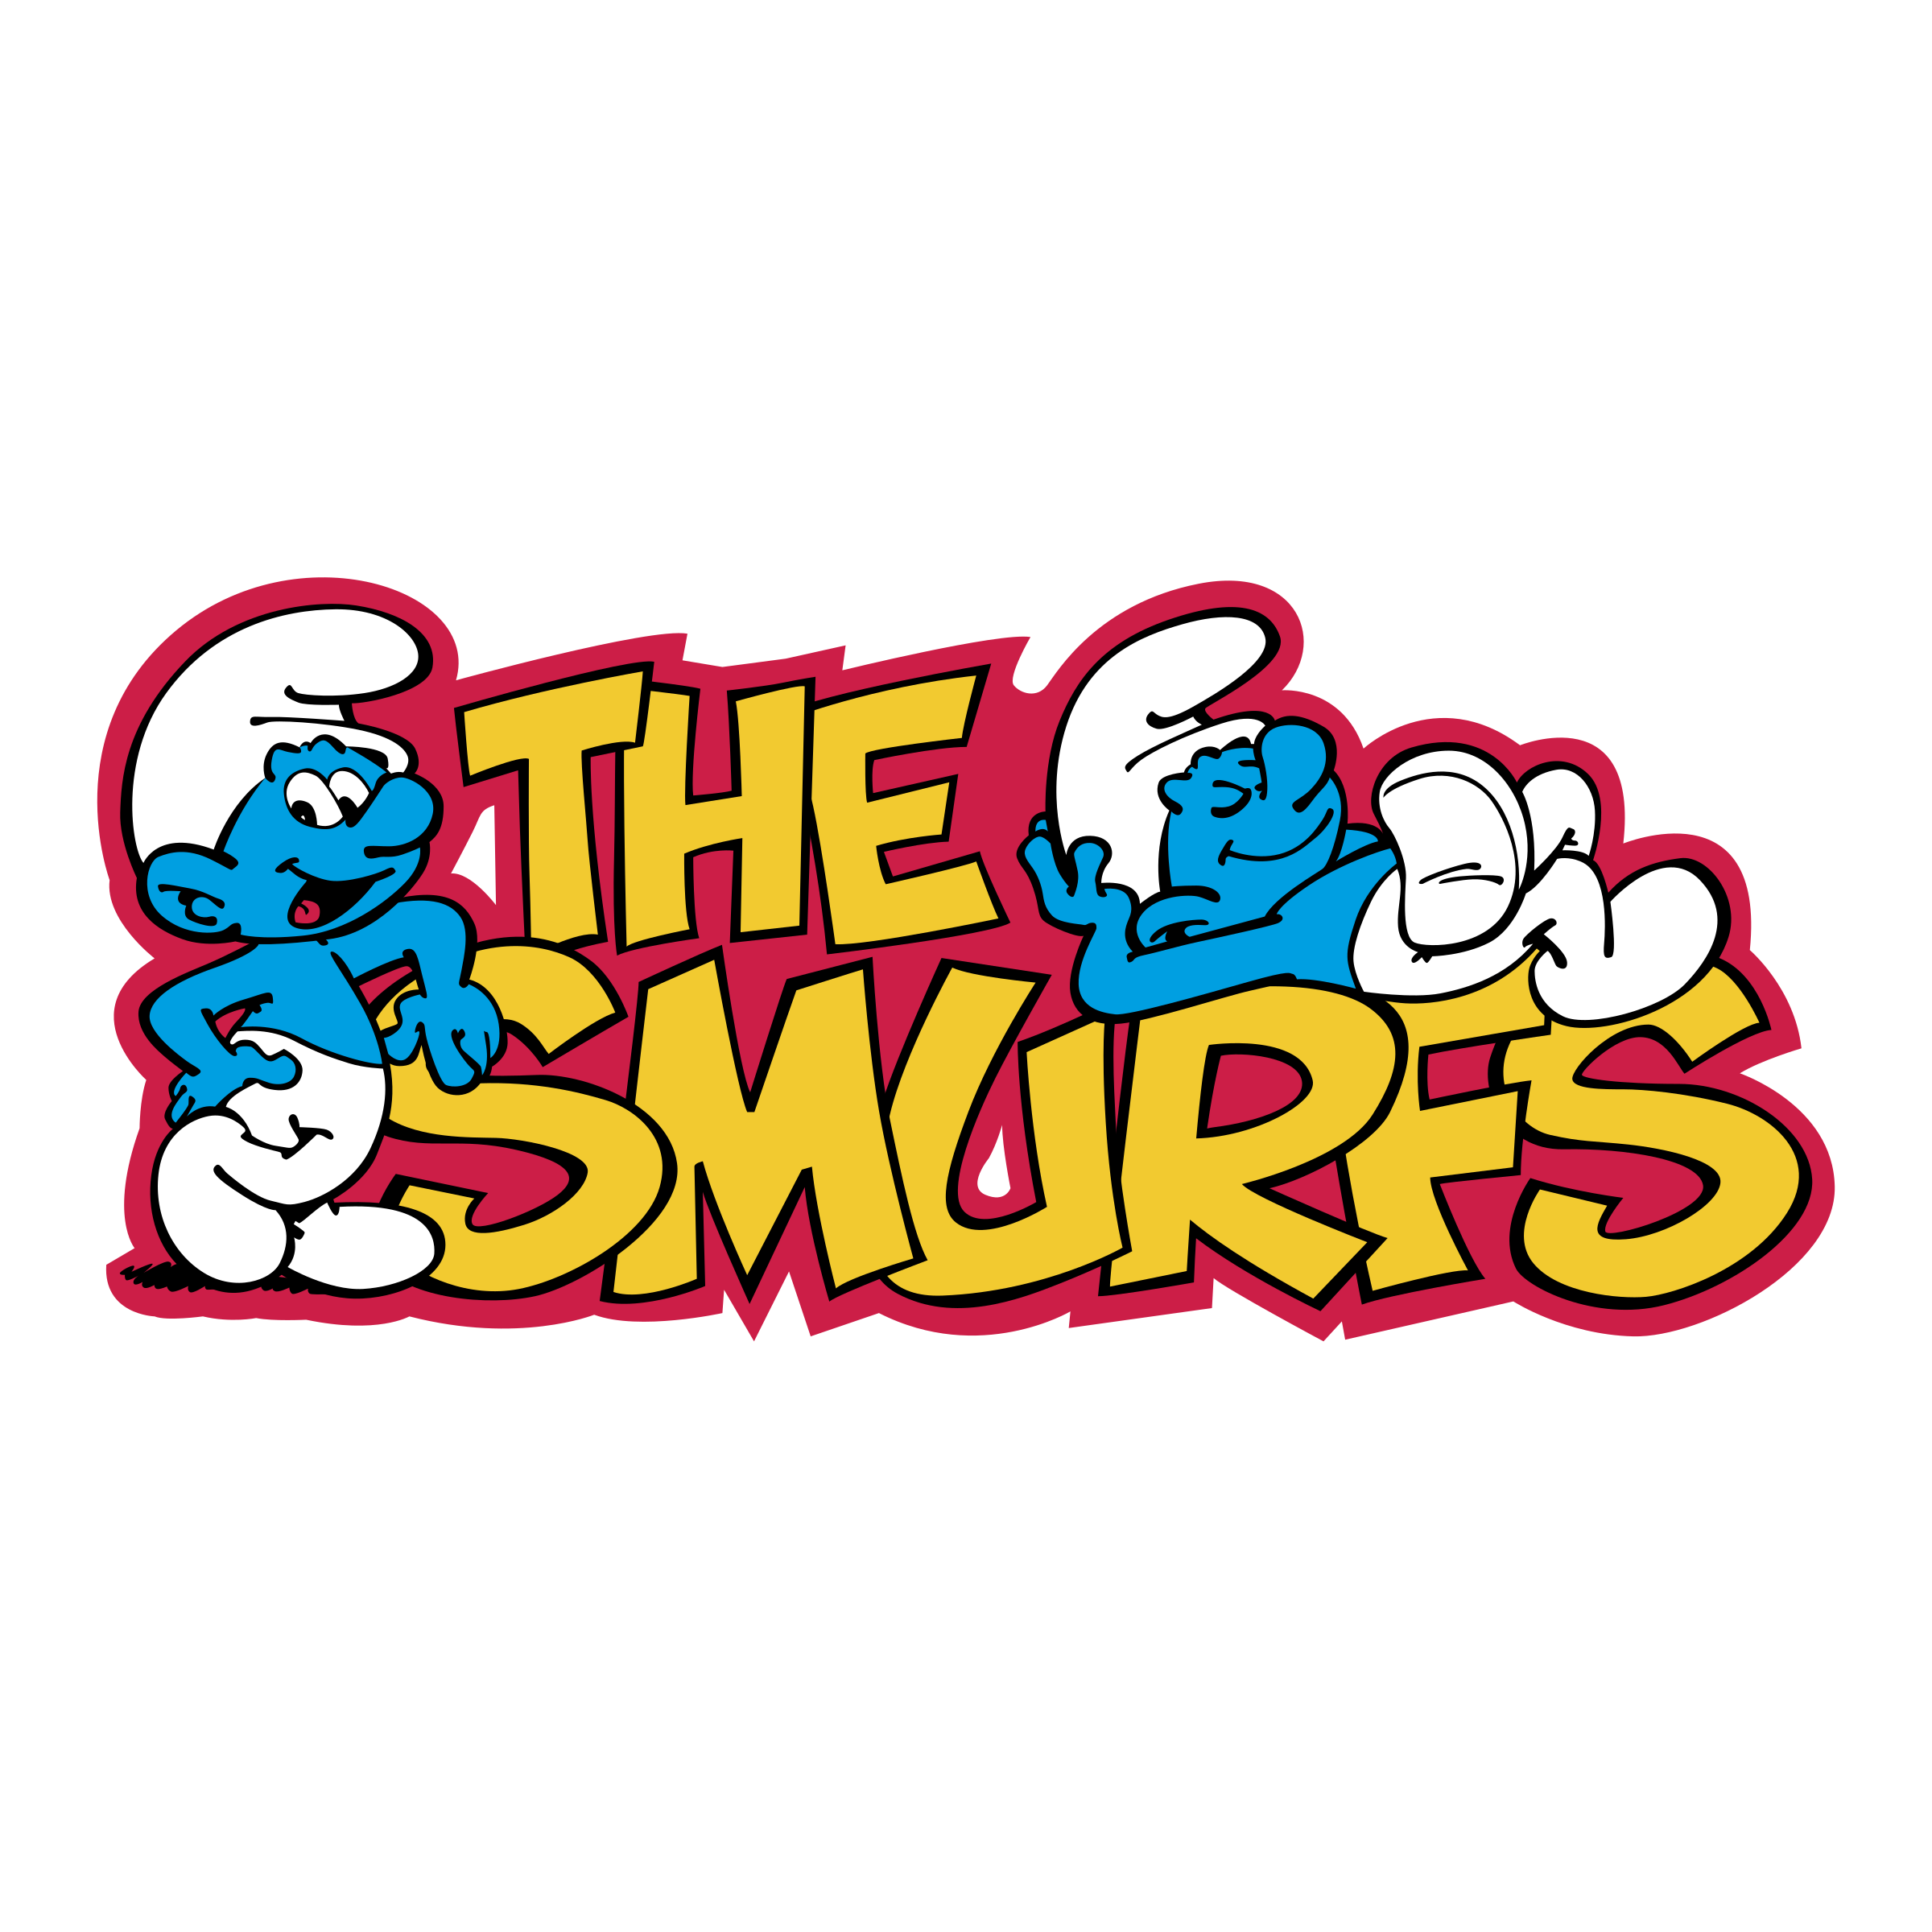 smurfs logo png transparent amp svg vector freebie supply